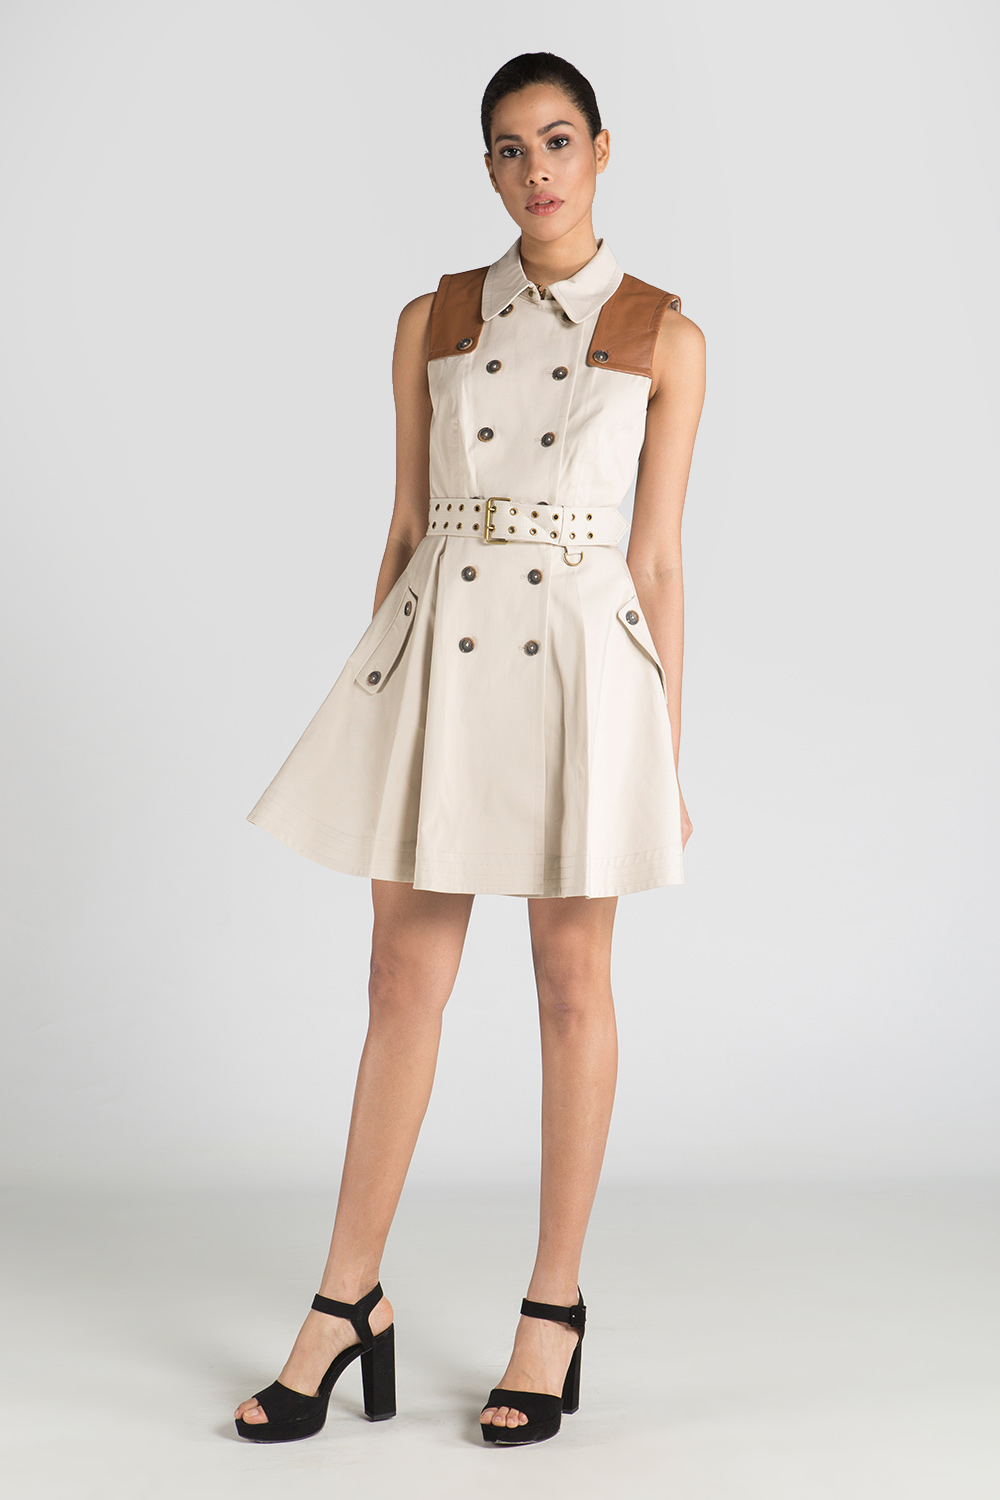 Trench coats aren't something that was taken straight out of a Fashion shows' runway. Through out the years trench coats were incorporated into the fashion industry. As well as thru the years, trench coats have evolved from the classic khaki long trench coats to more modern styles.